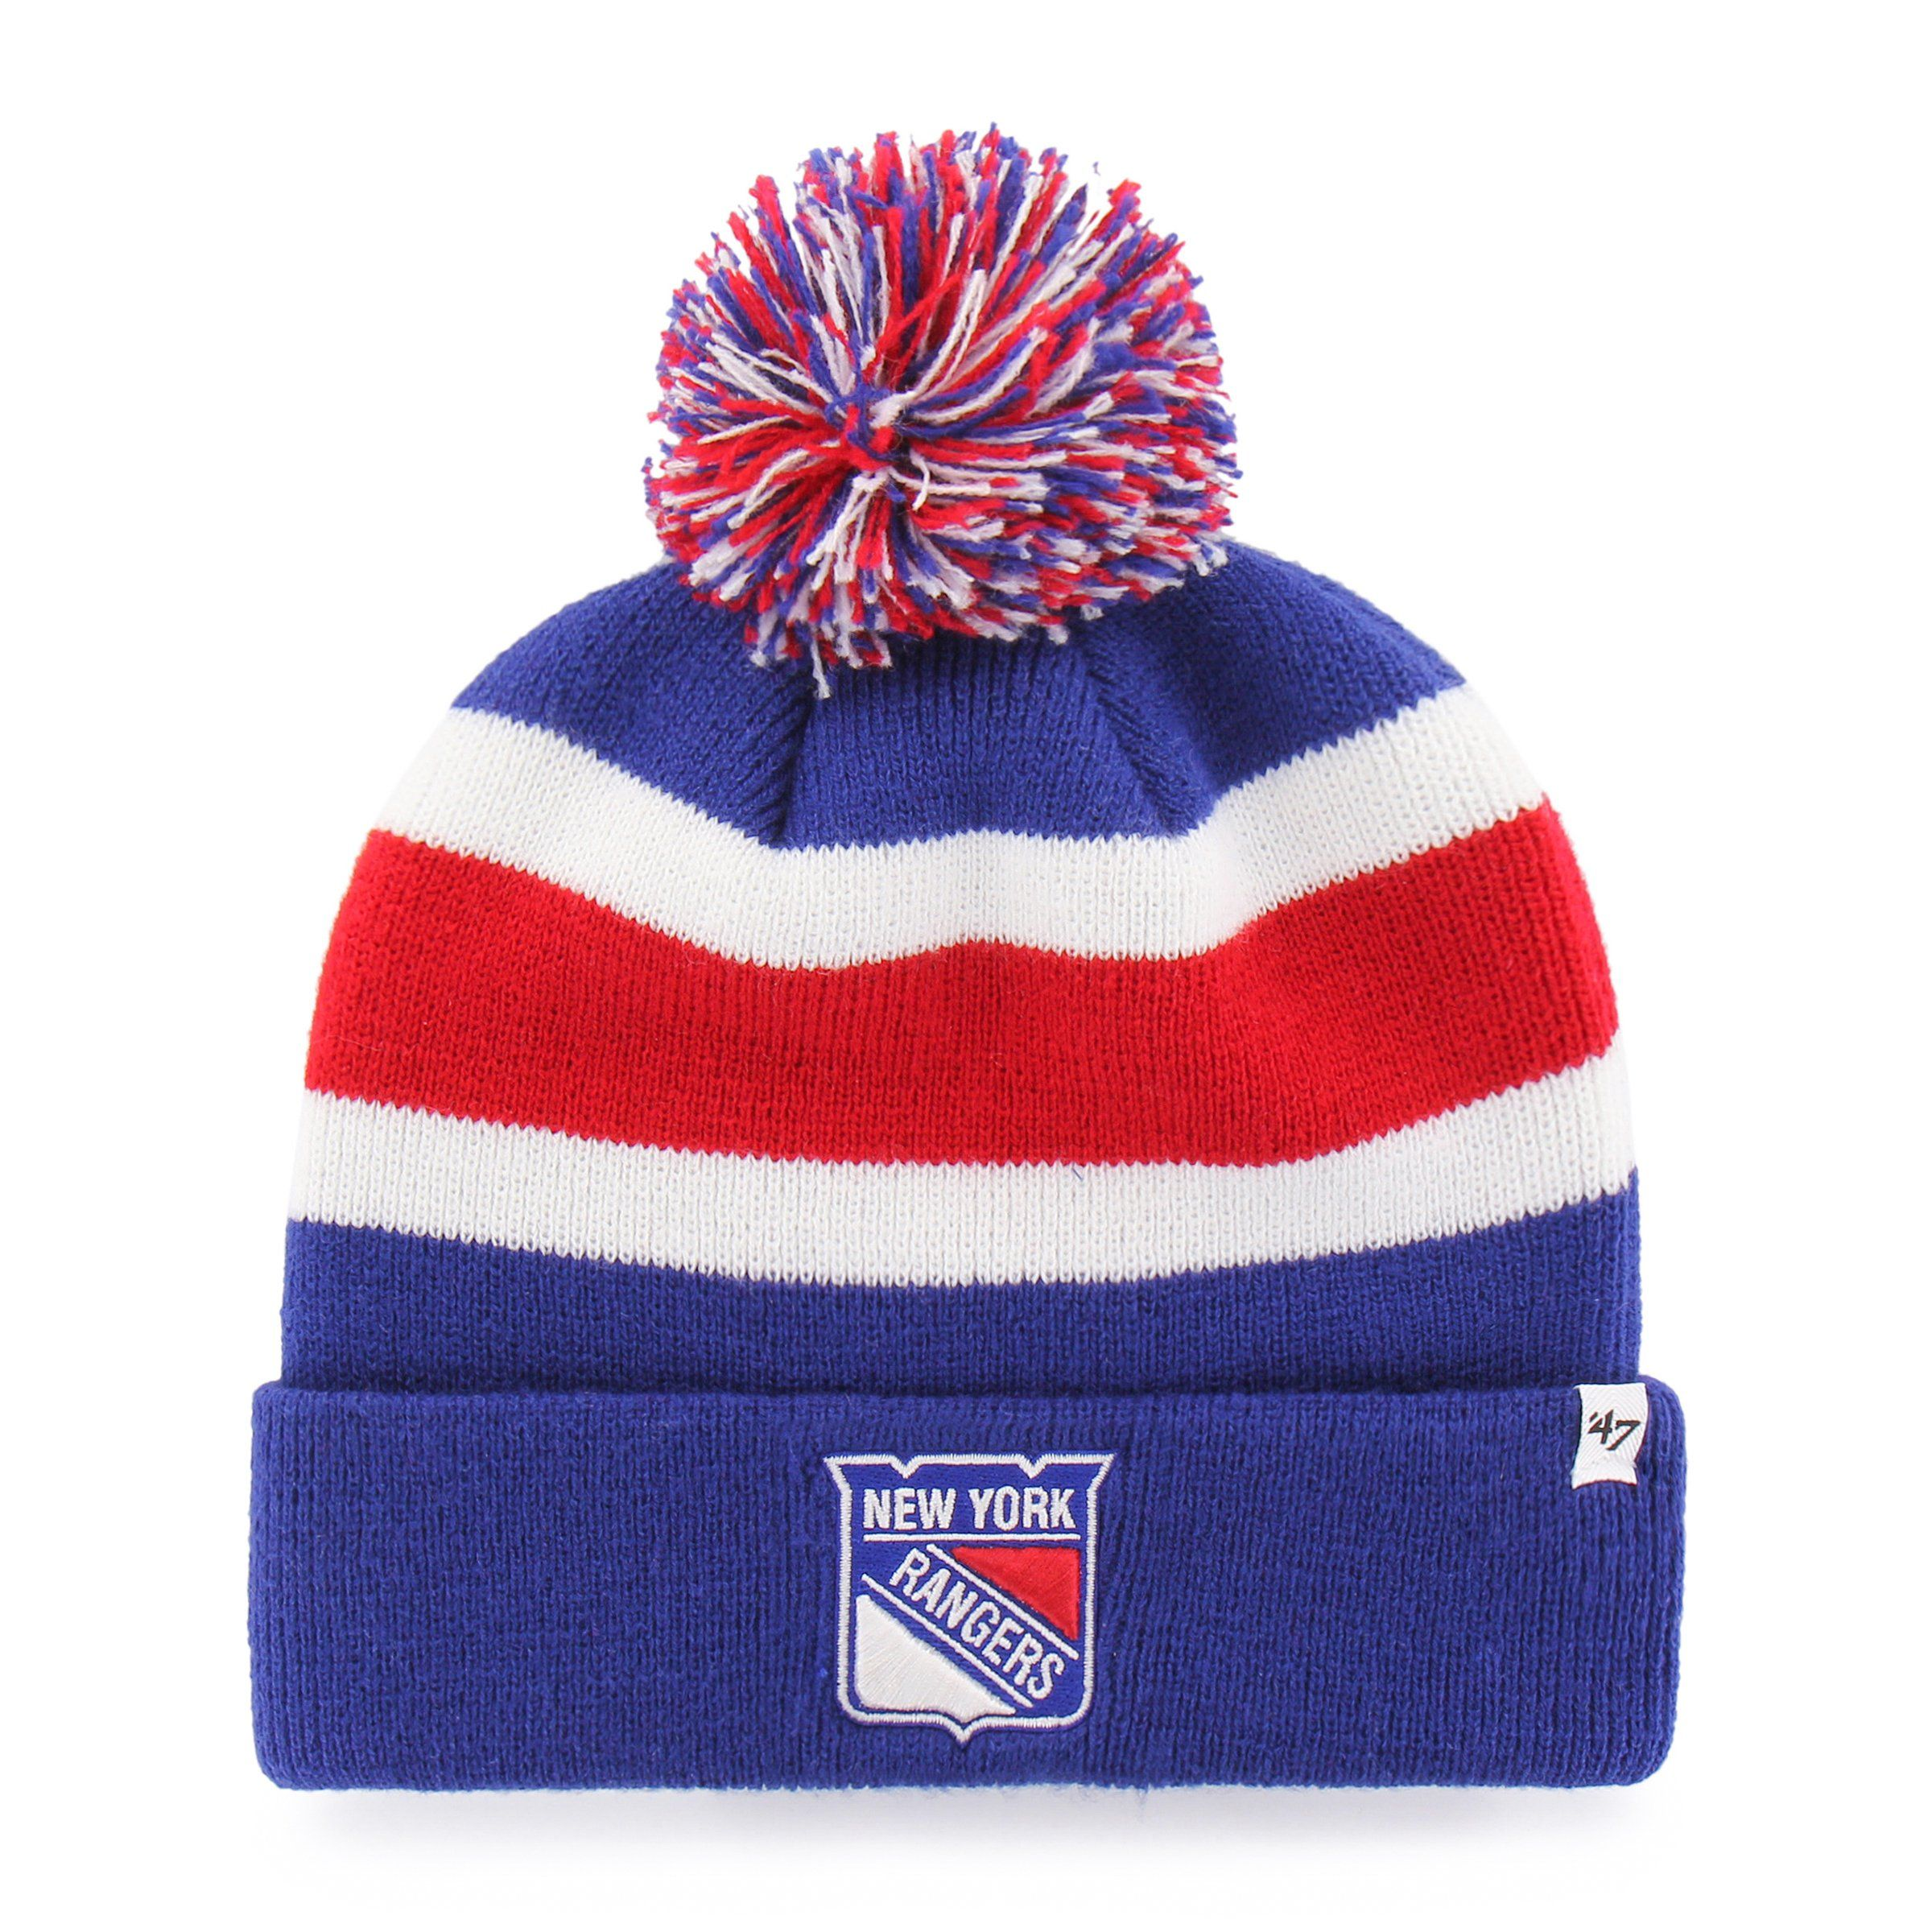 3caba278e New York Rangers 47 Brand Royal Blue Breakaway Cuff Poofball Beanie Hat Cap